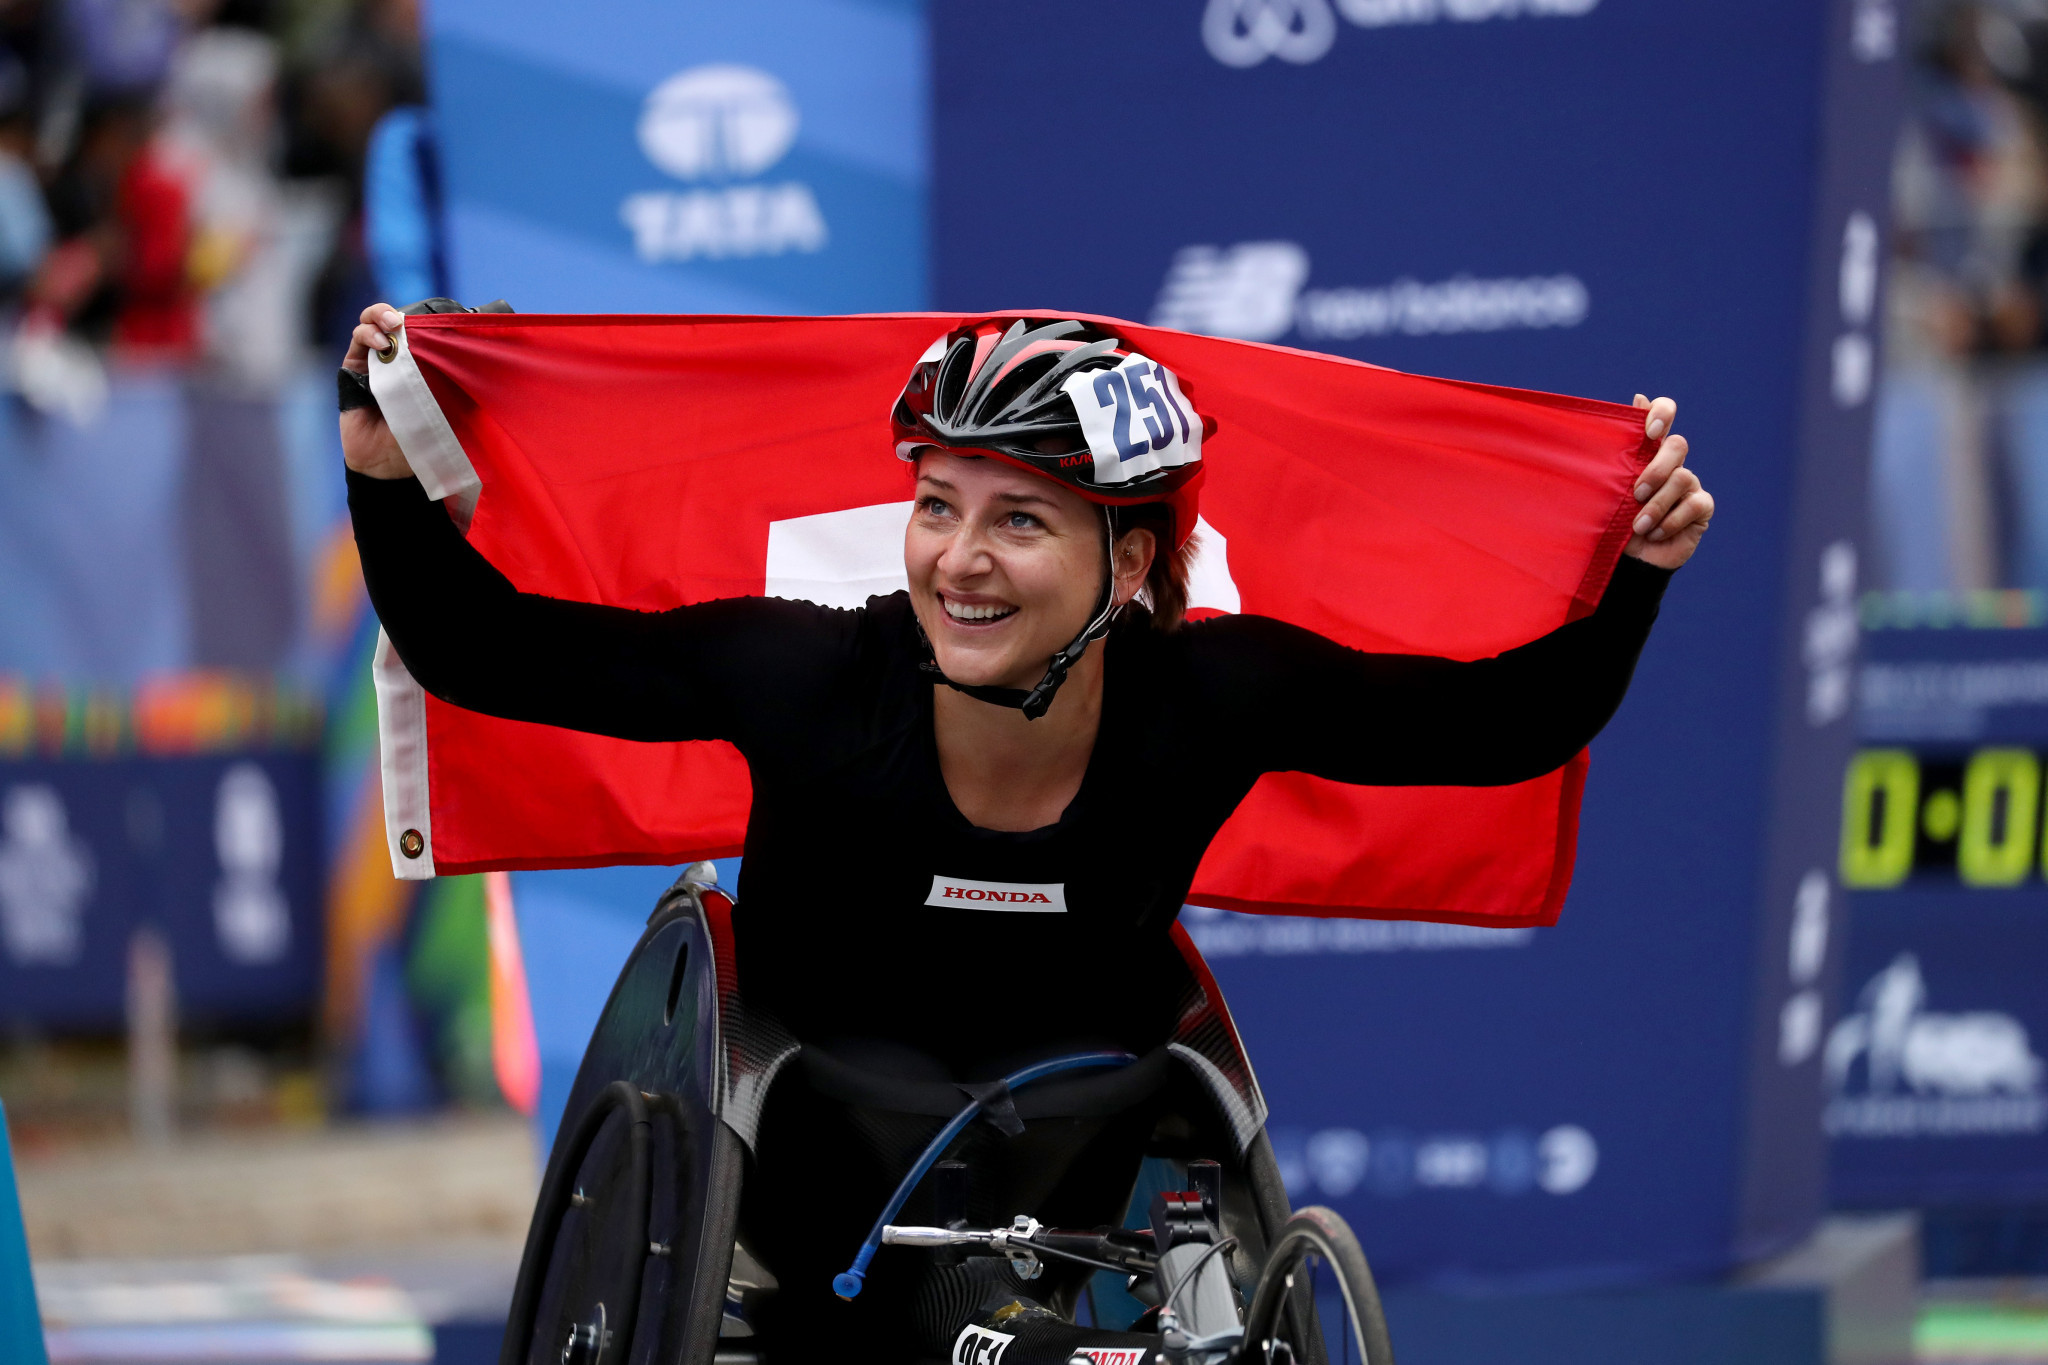 Manuela Schar is another athlete to make the shortlist  ©Getty Images